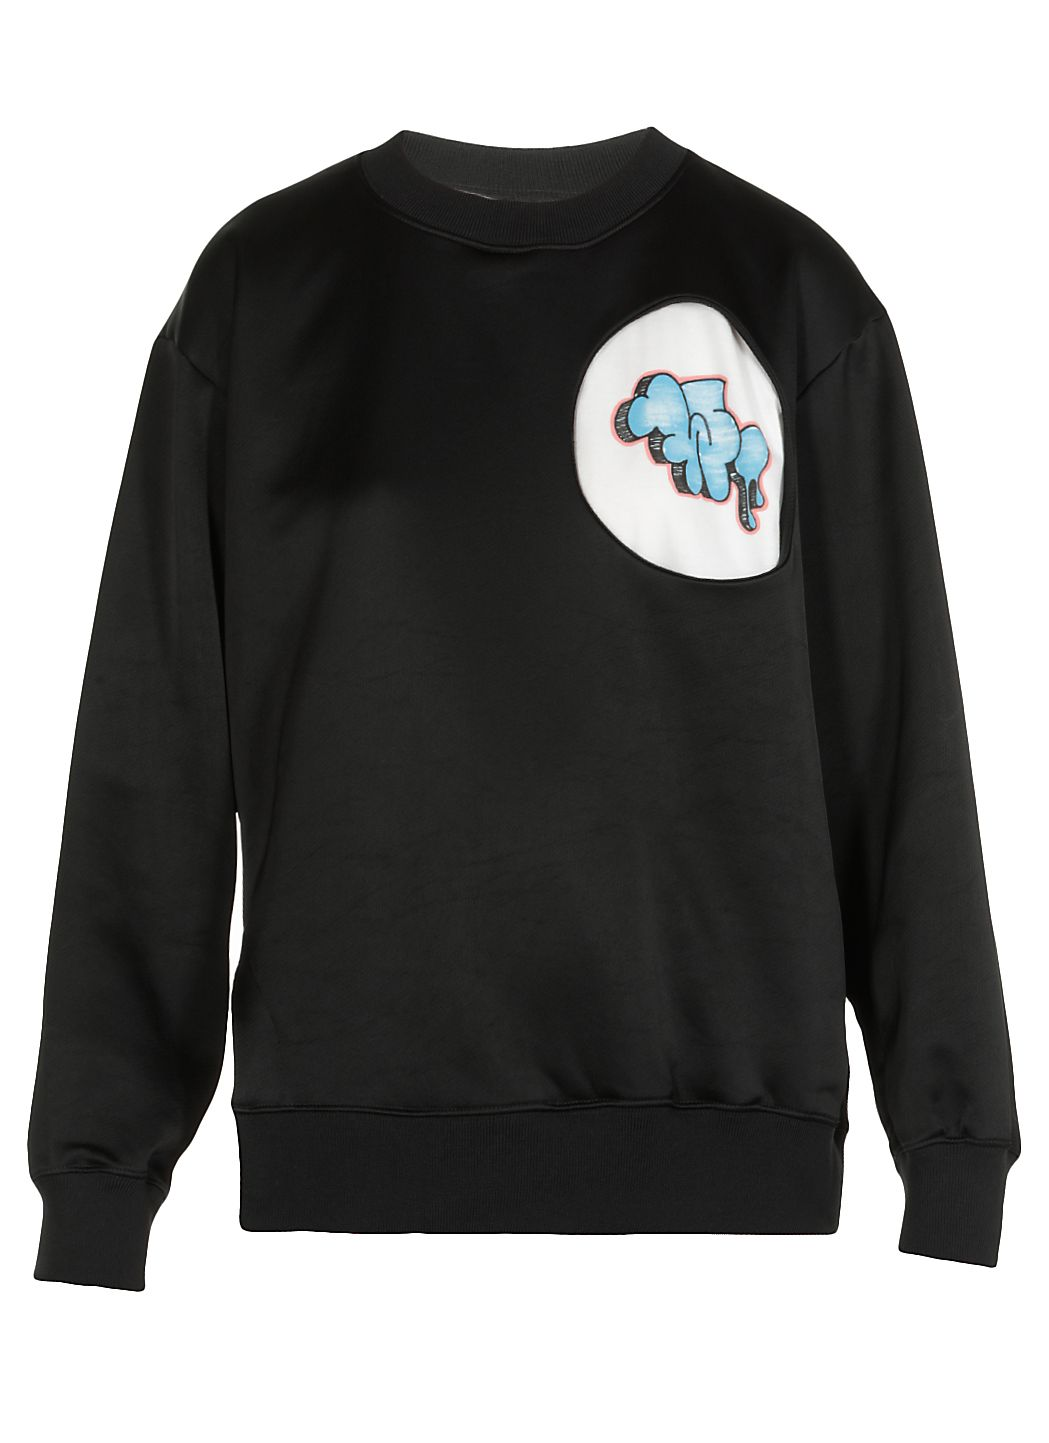 Shiny Fleece Graffiti sweatshirt